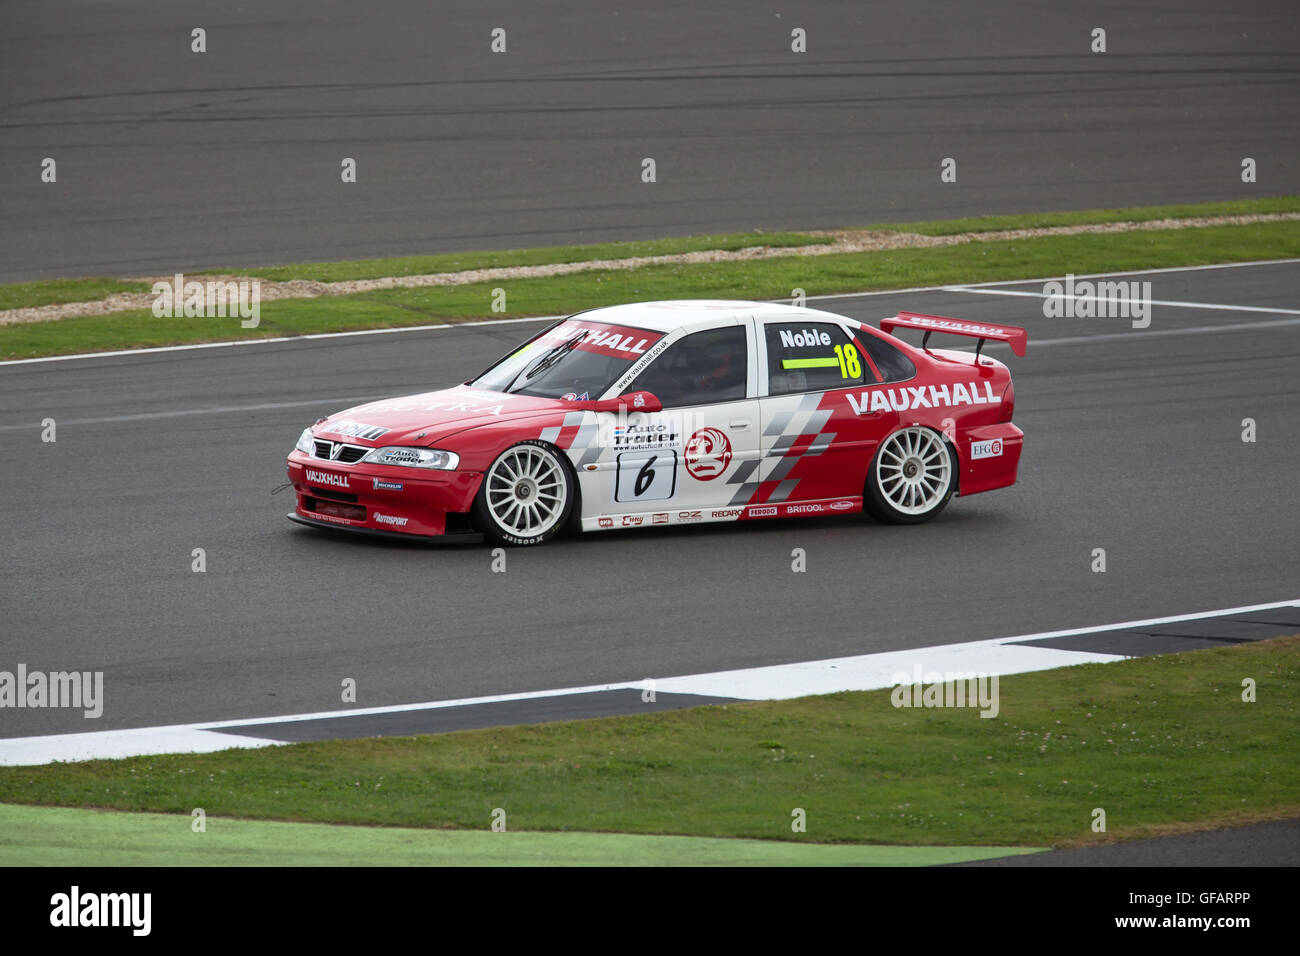 Silverstone,Towcester,UK,30th July 2016,Vauxhall taking part in the Jet Super Touring Car Trophy race which took Stock Photo